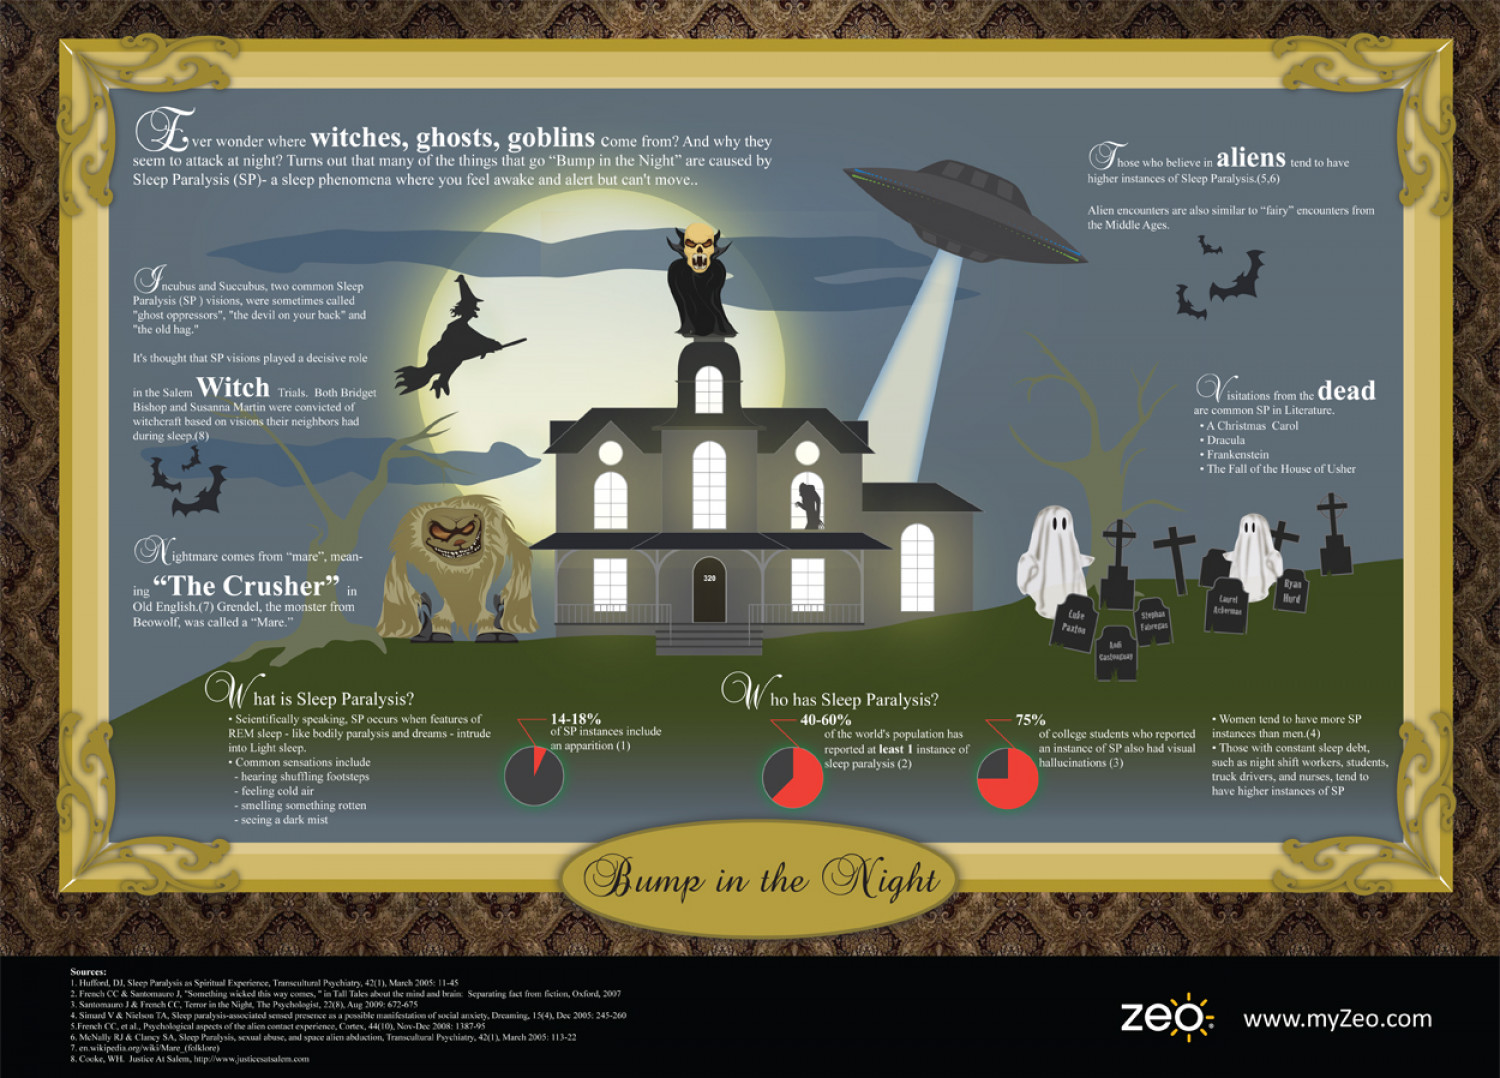 Bump in the Night Infographic